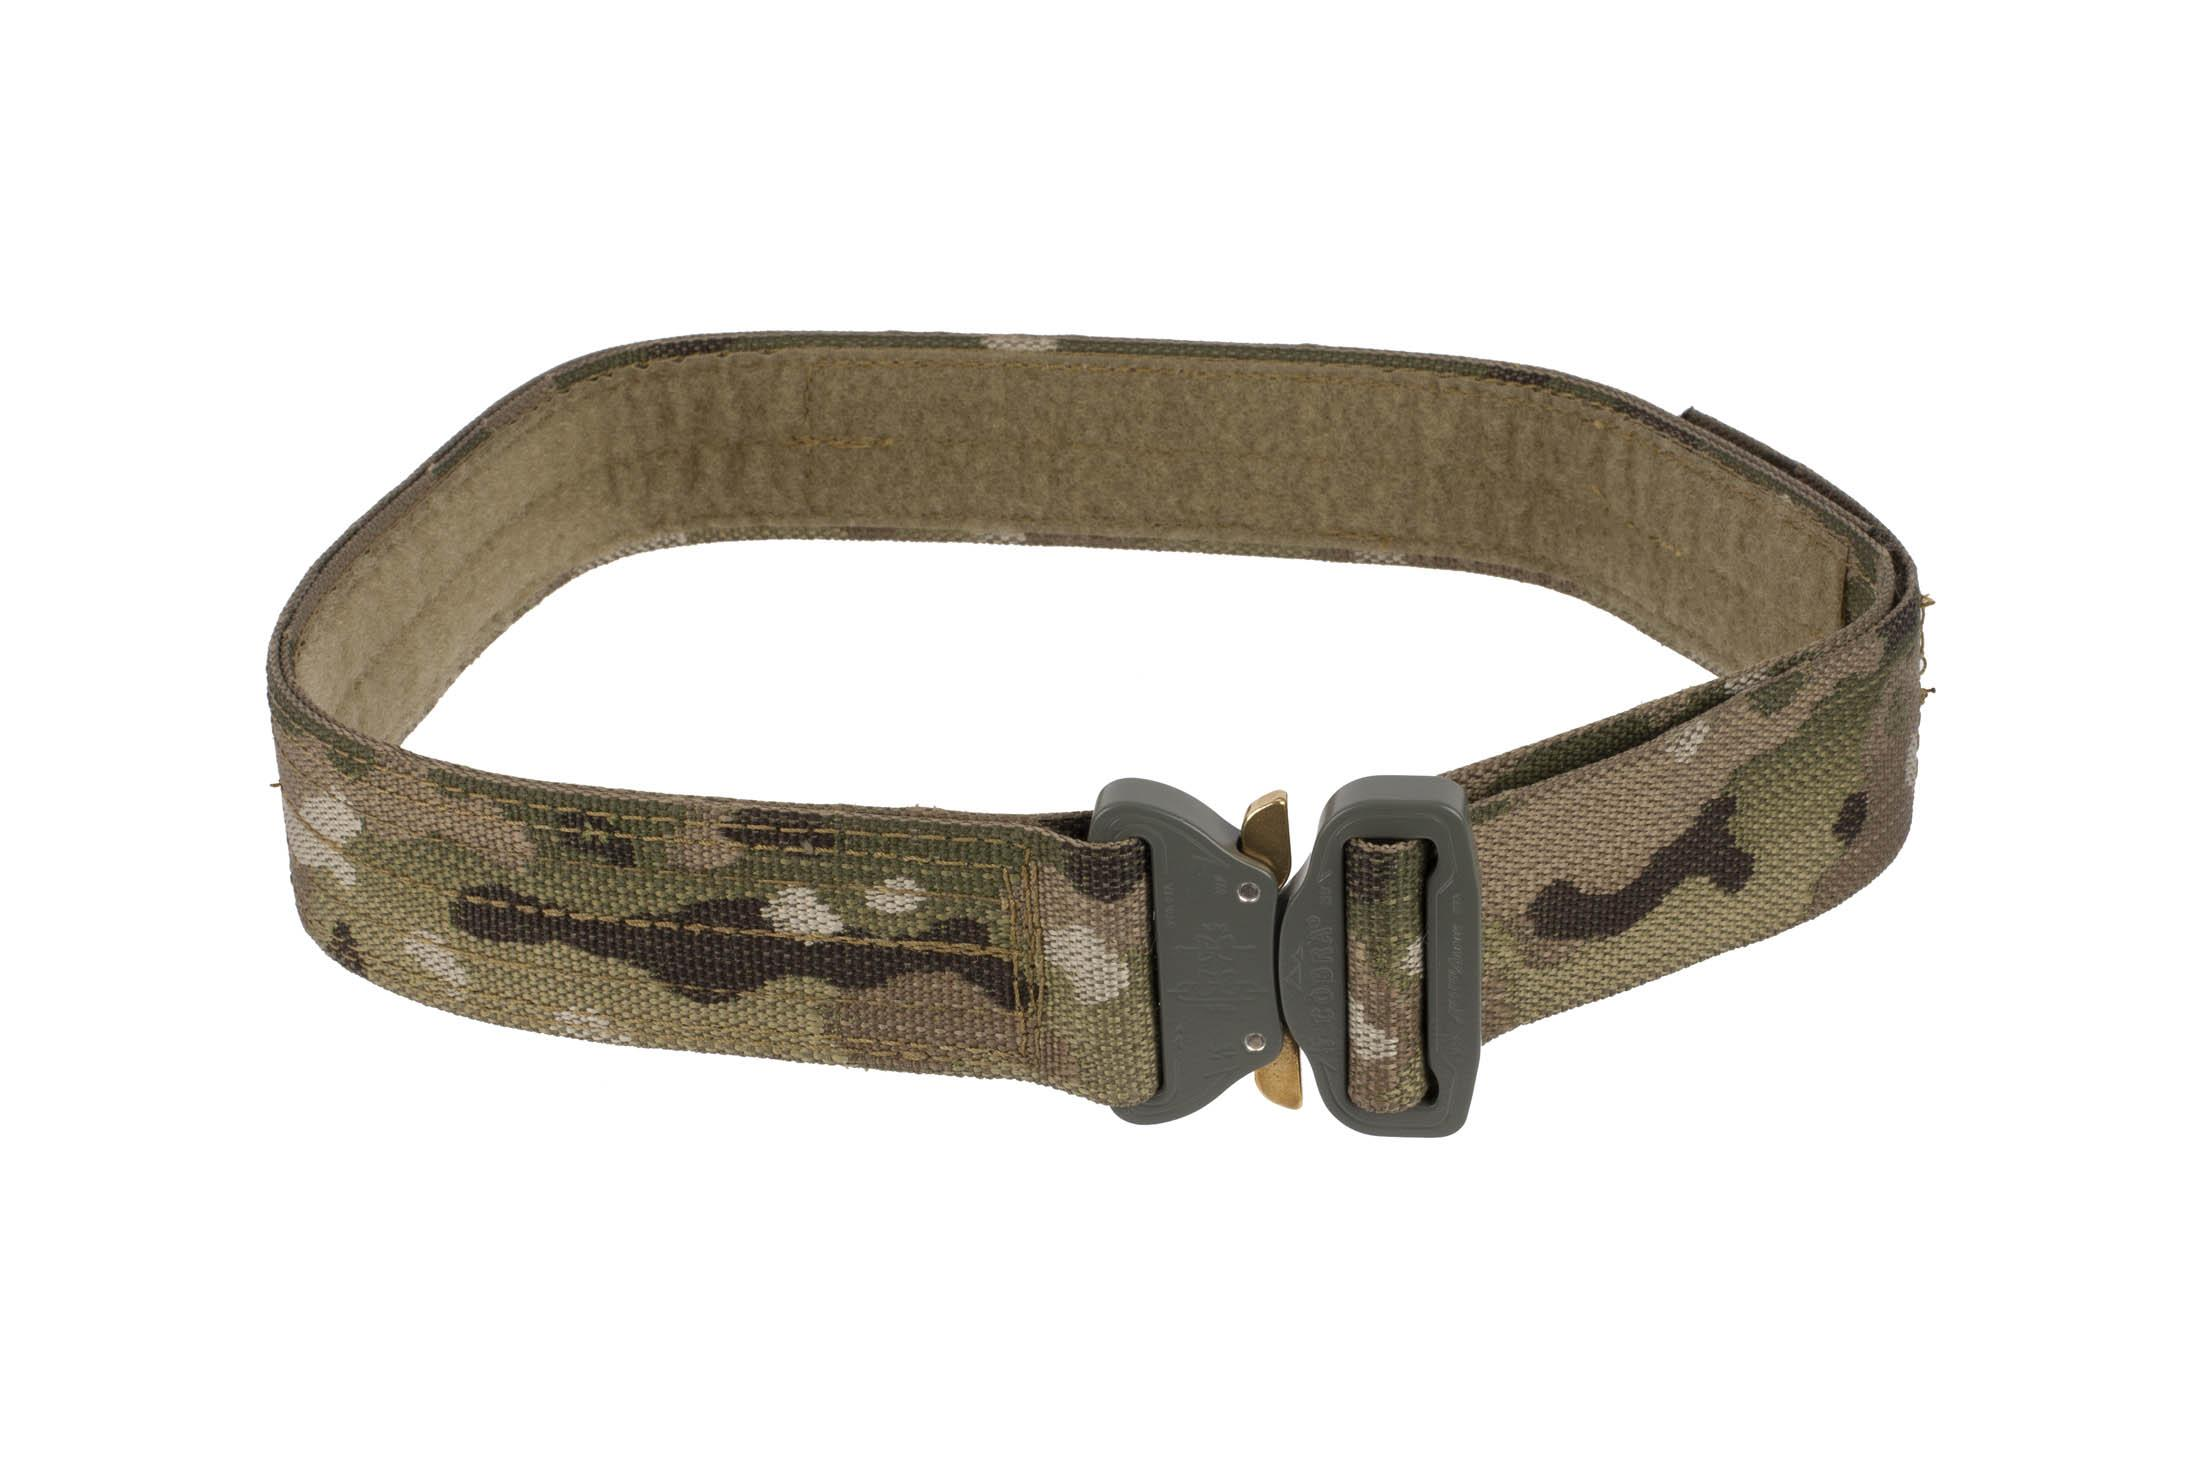 High Speed Gear 1.75in Rigger Belt MultiCam is equipped with a small Cobra Buckle.